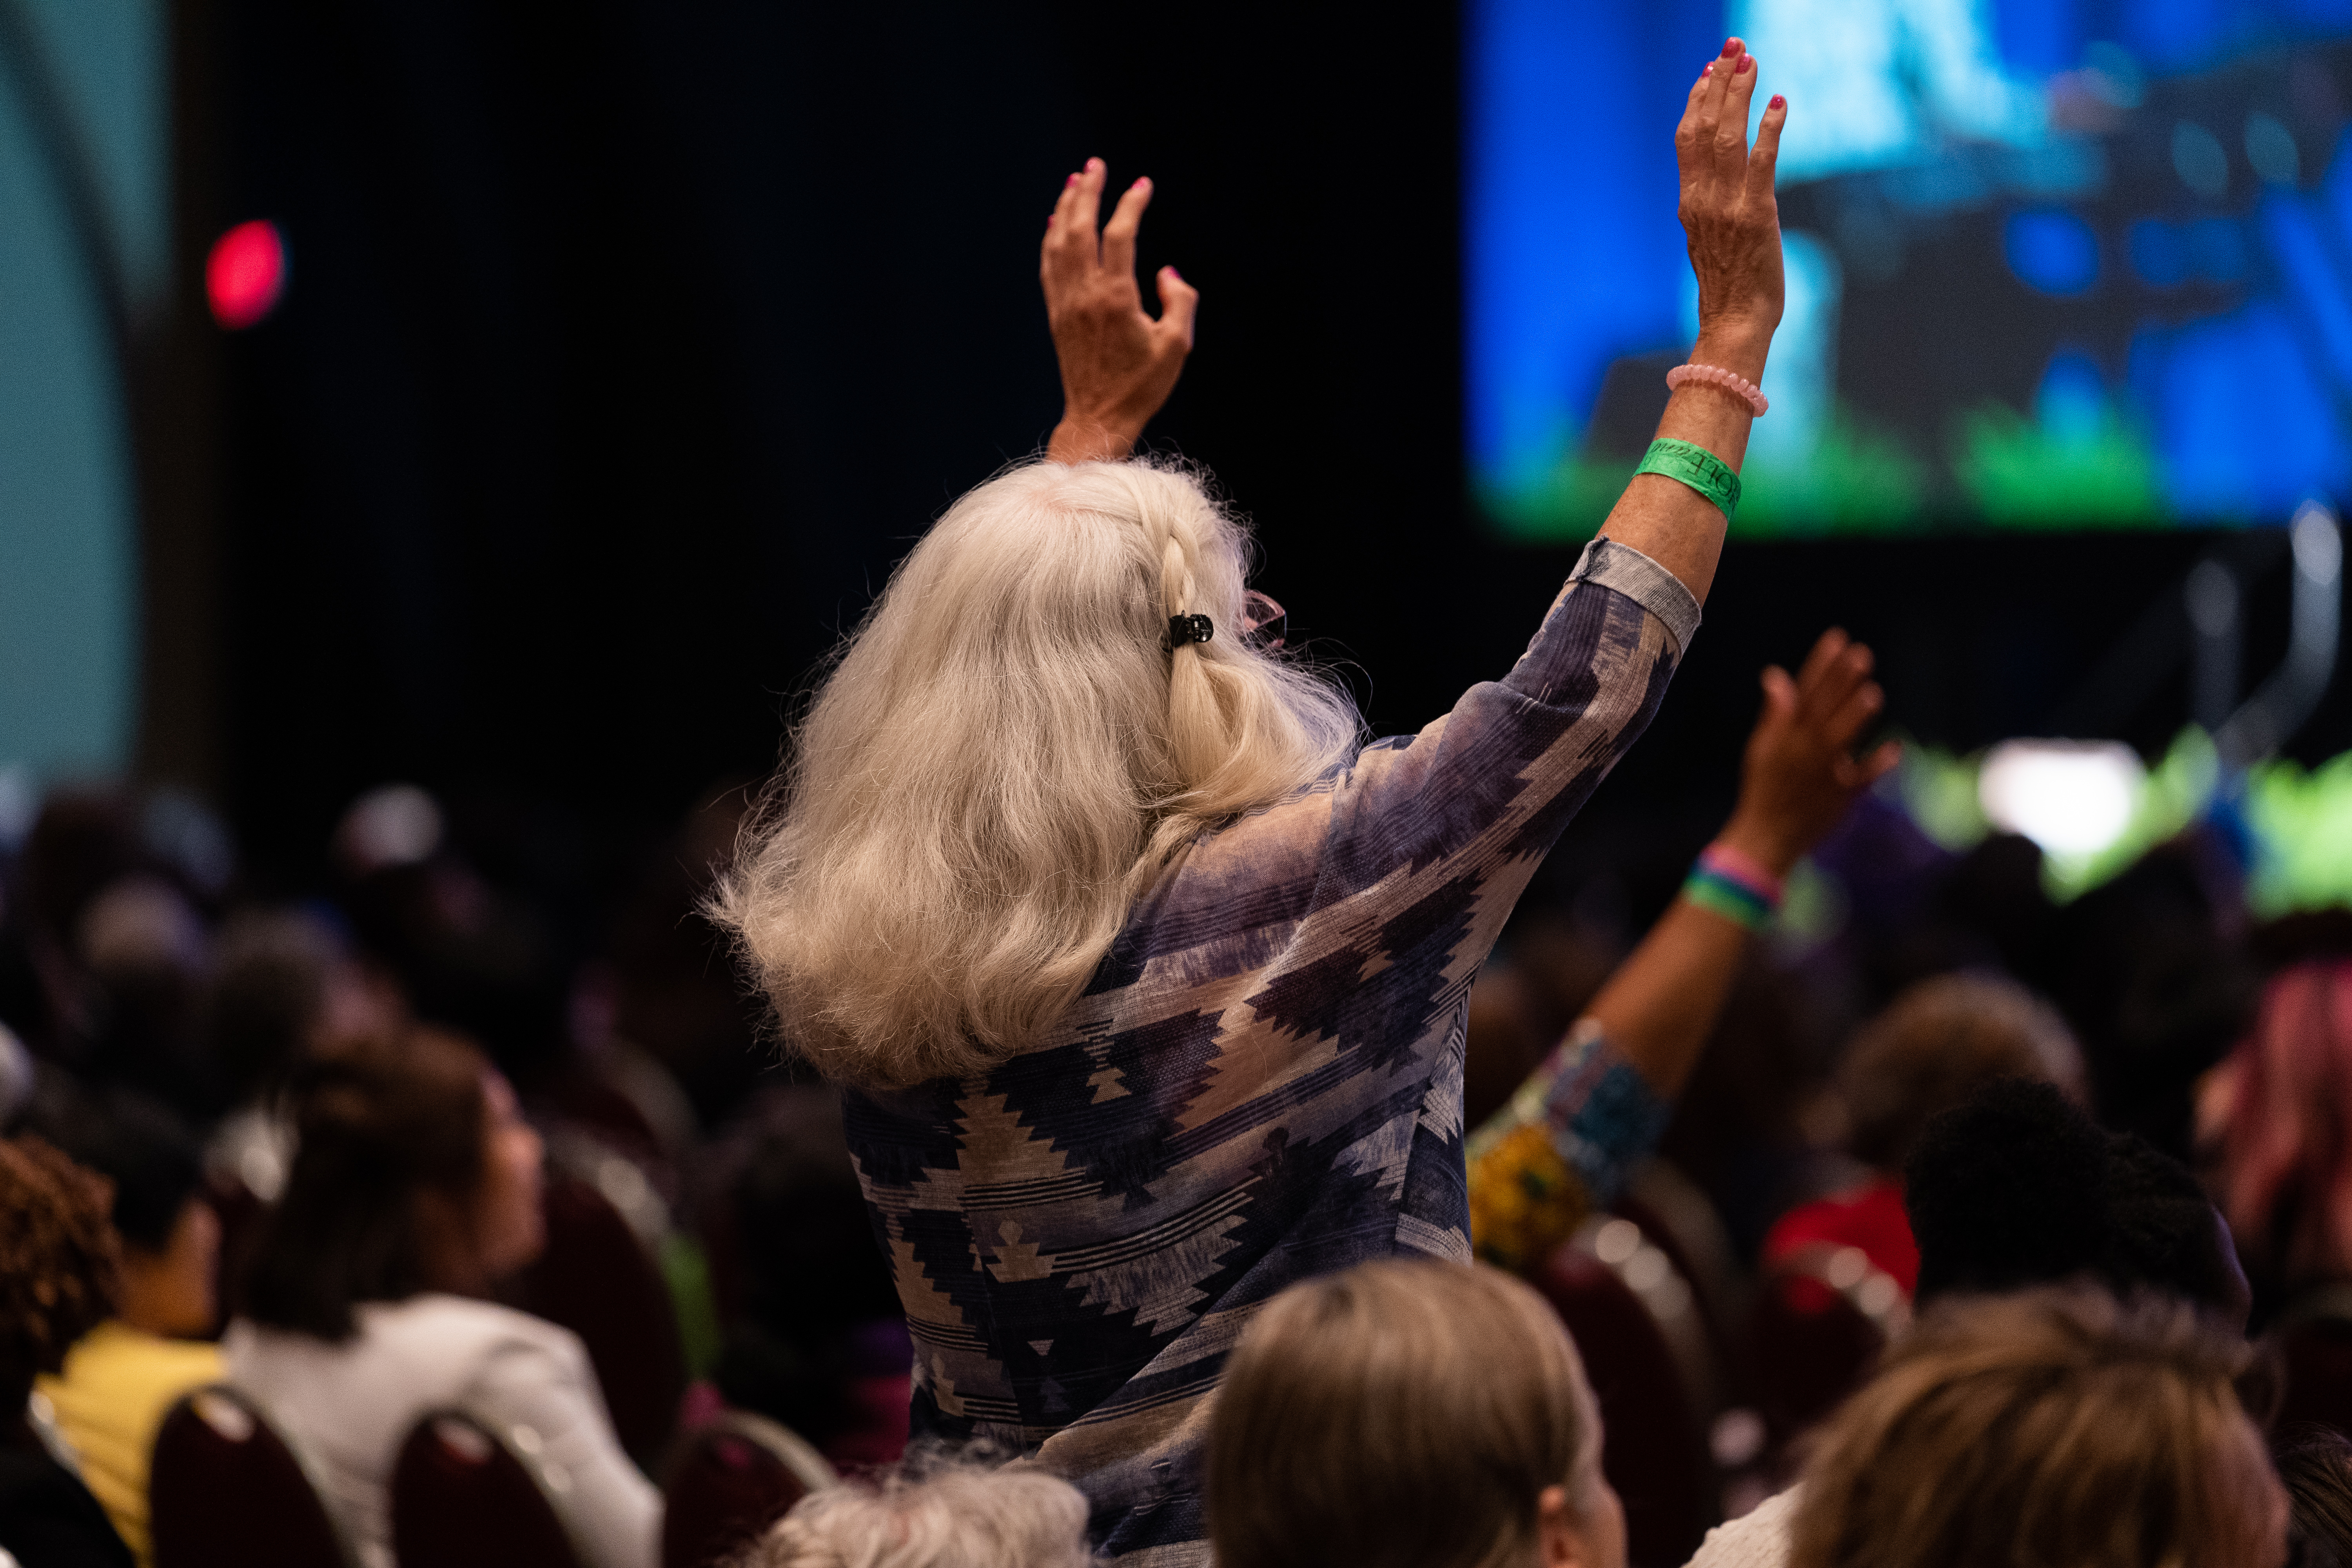 Convention attendee responds to praise and worship songs.